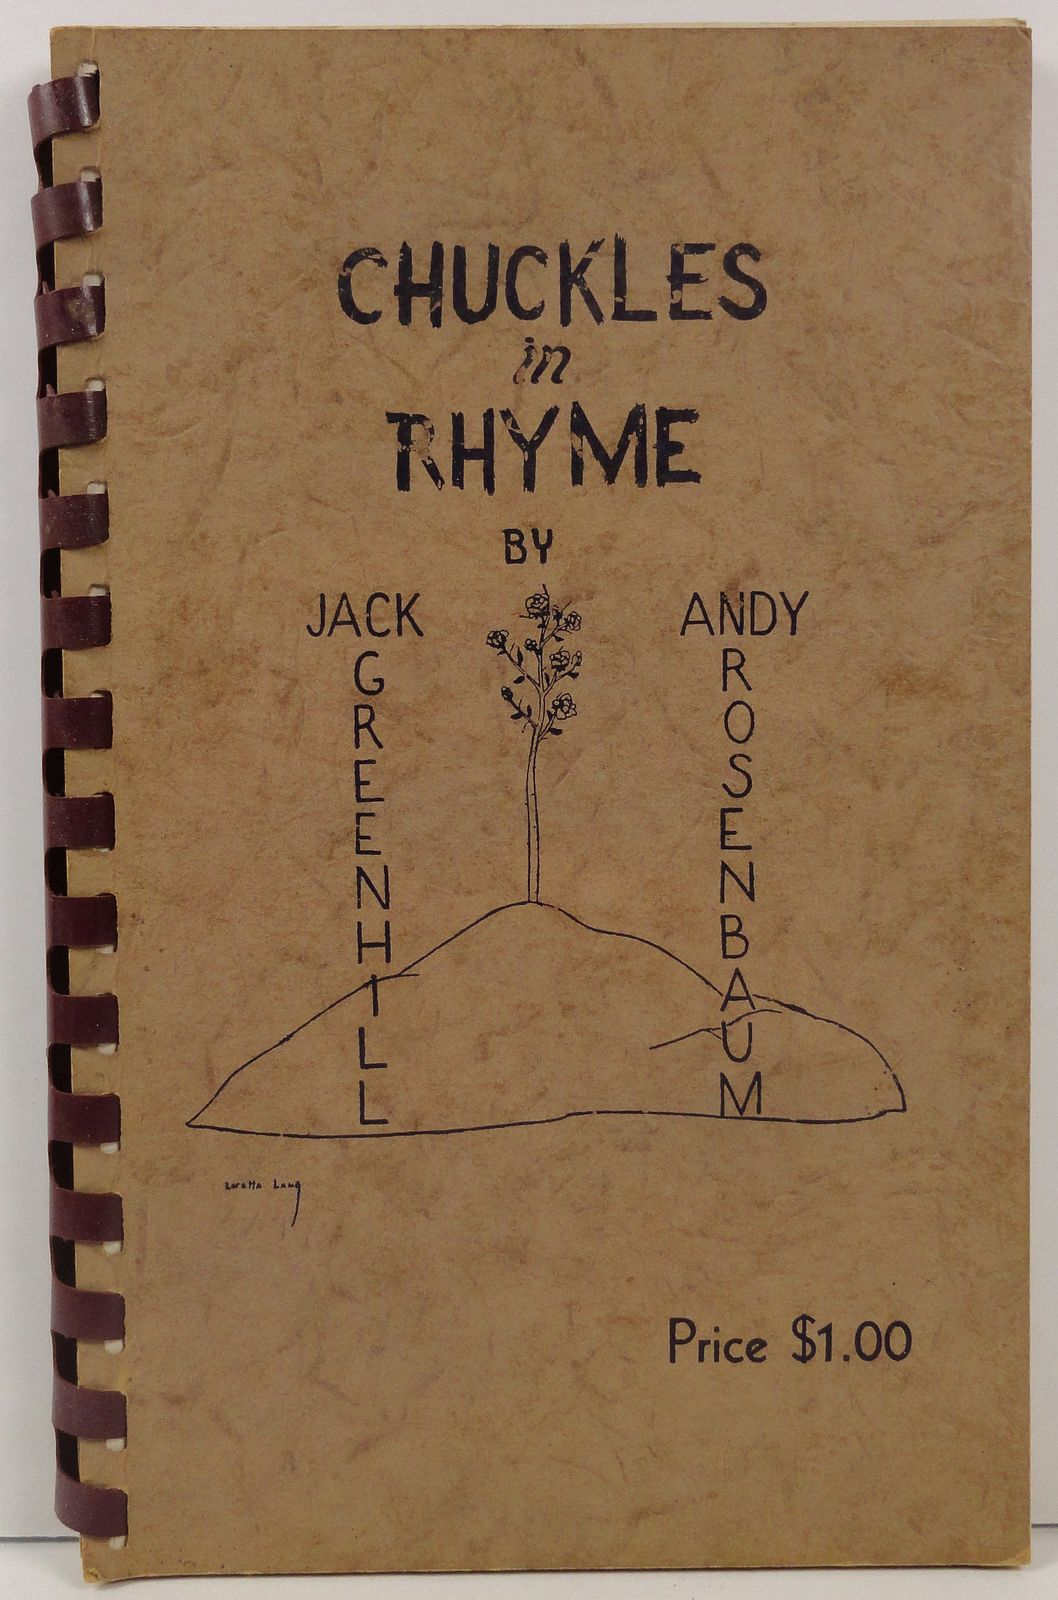 Chuckles in Rhyme by Jack Greenhill and Andy Rosenbaum 1945